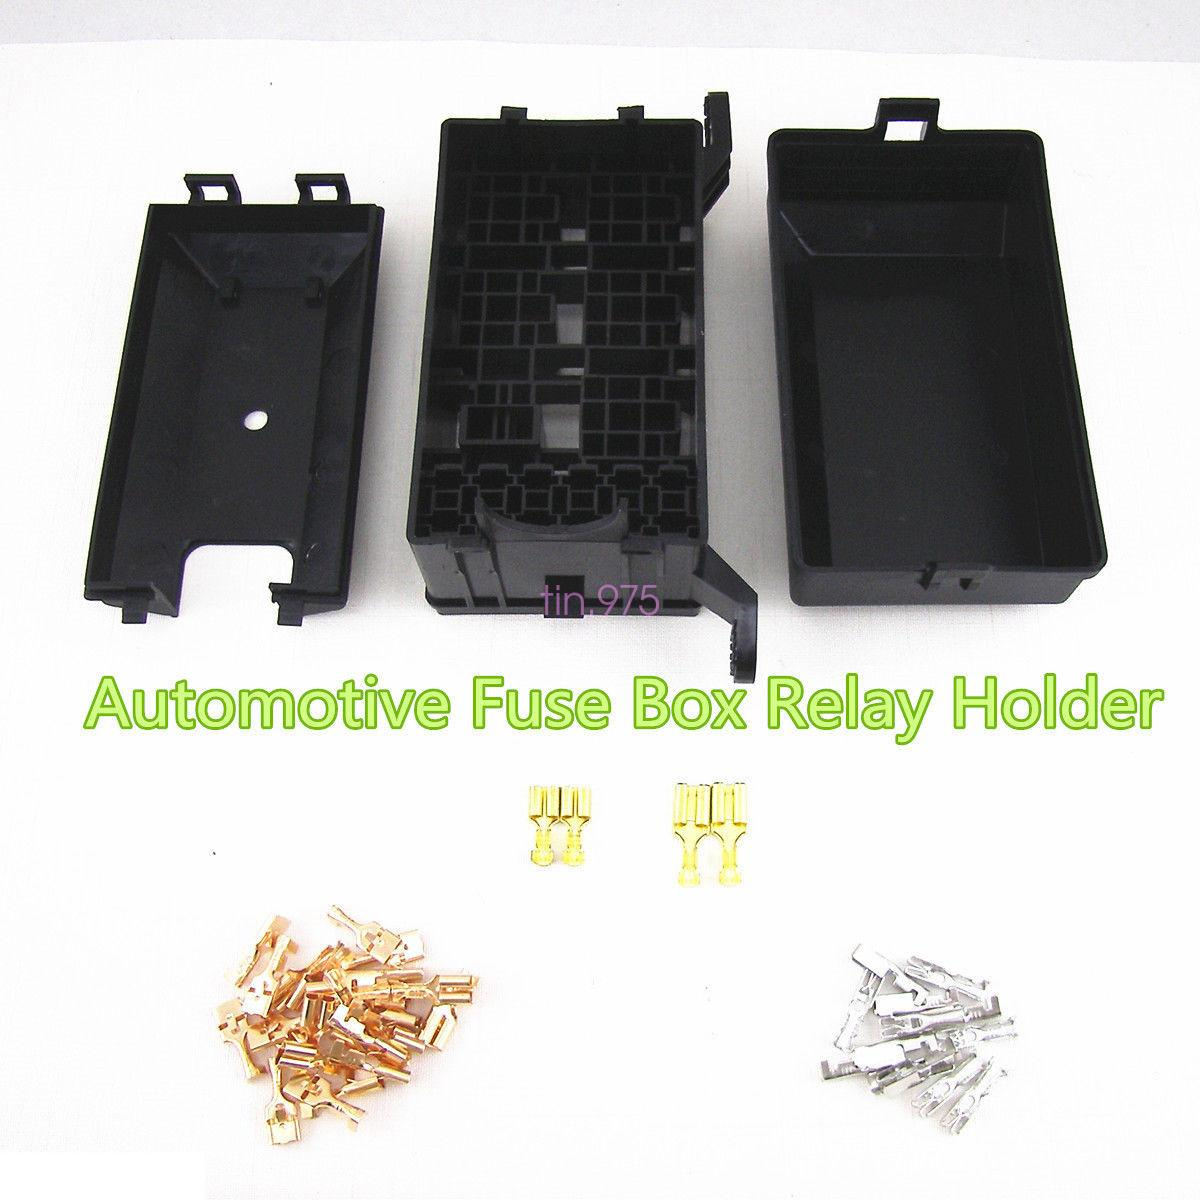 Autos Relay Fuse Box 6 5 Road Compartment Insurance Car 2011 Acura Rdx Holder